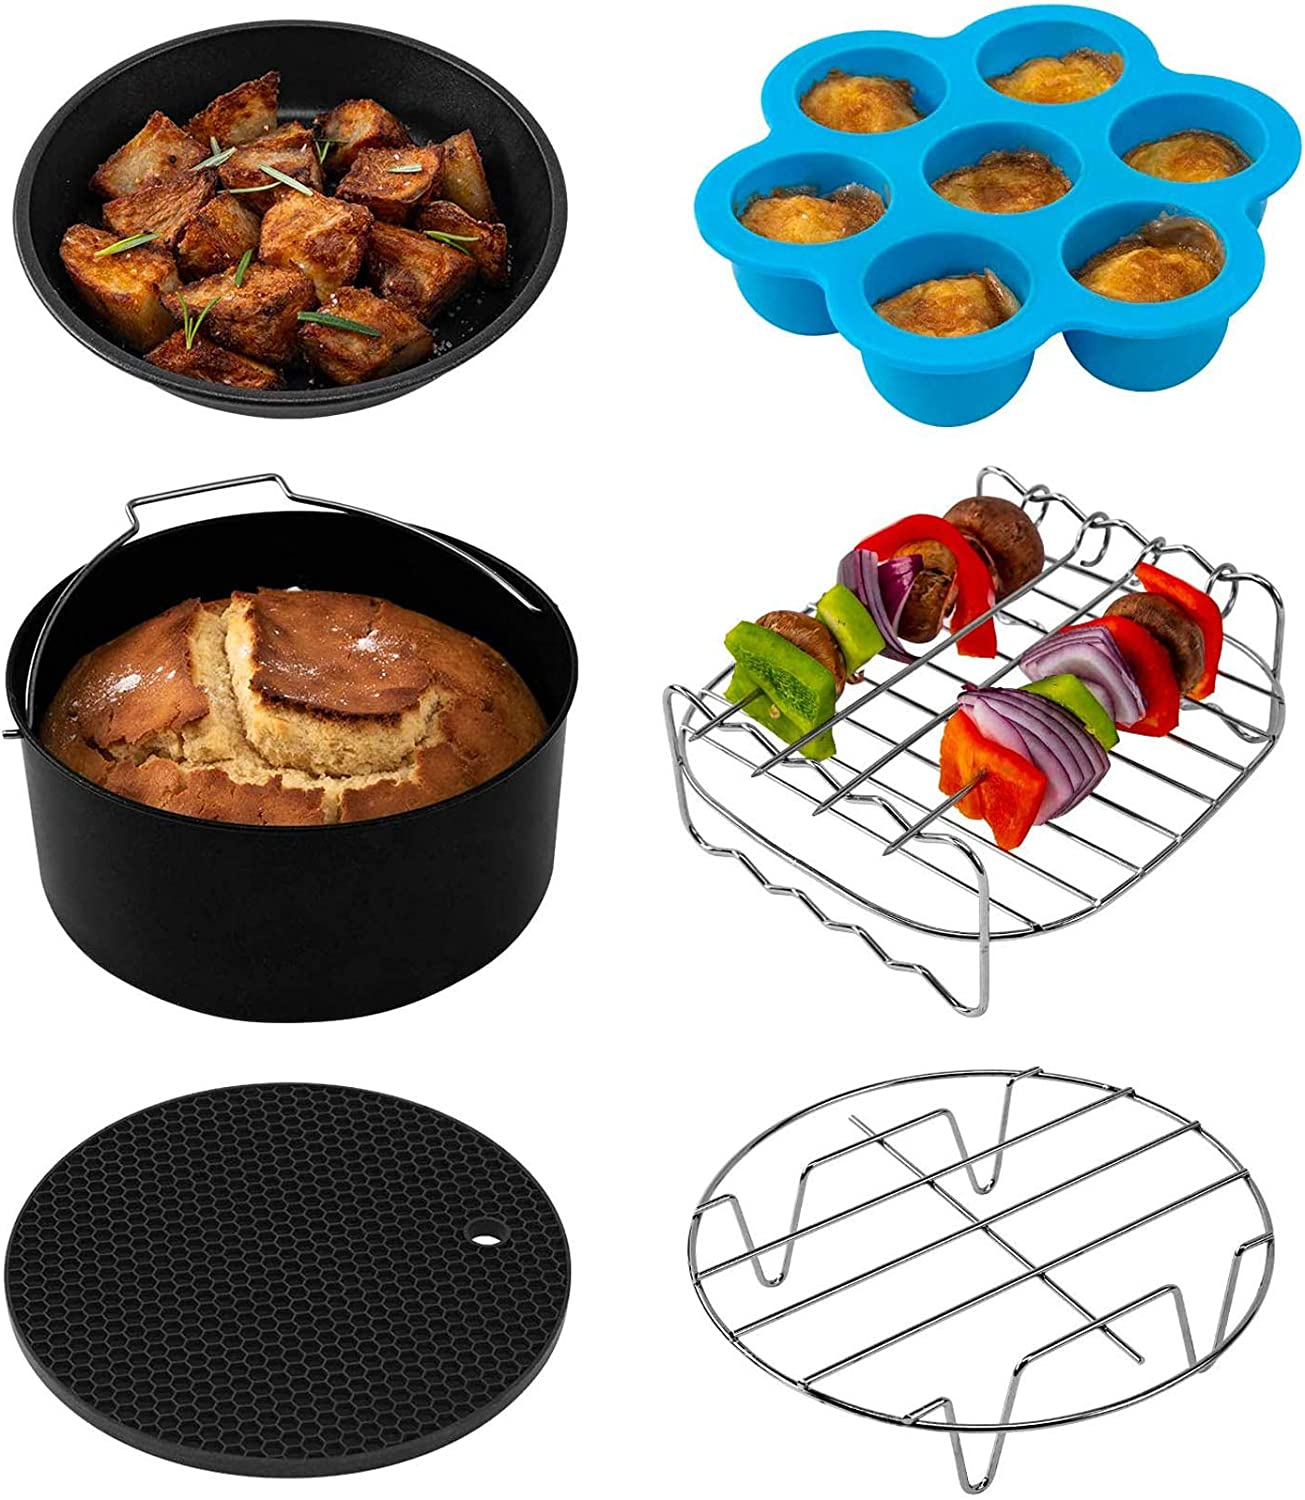 COSORI Set of 6 Fit all 3.7Qt, 4.2Qt Air Fryer, BPA Free, Dishwasher Safe, Nonstick Coating